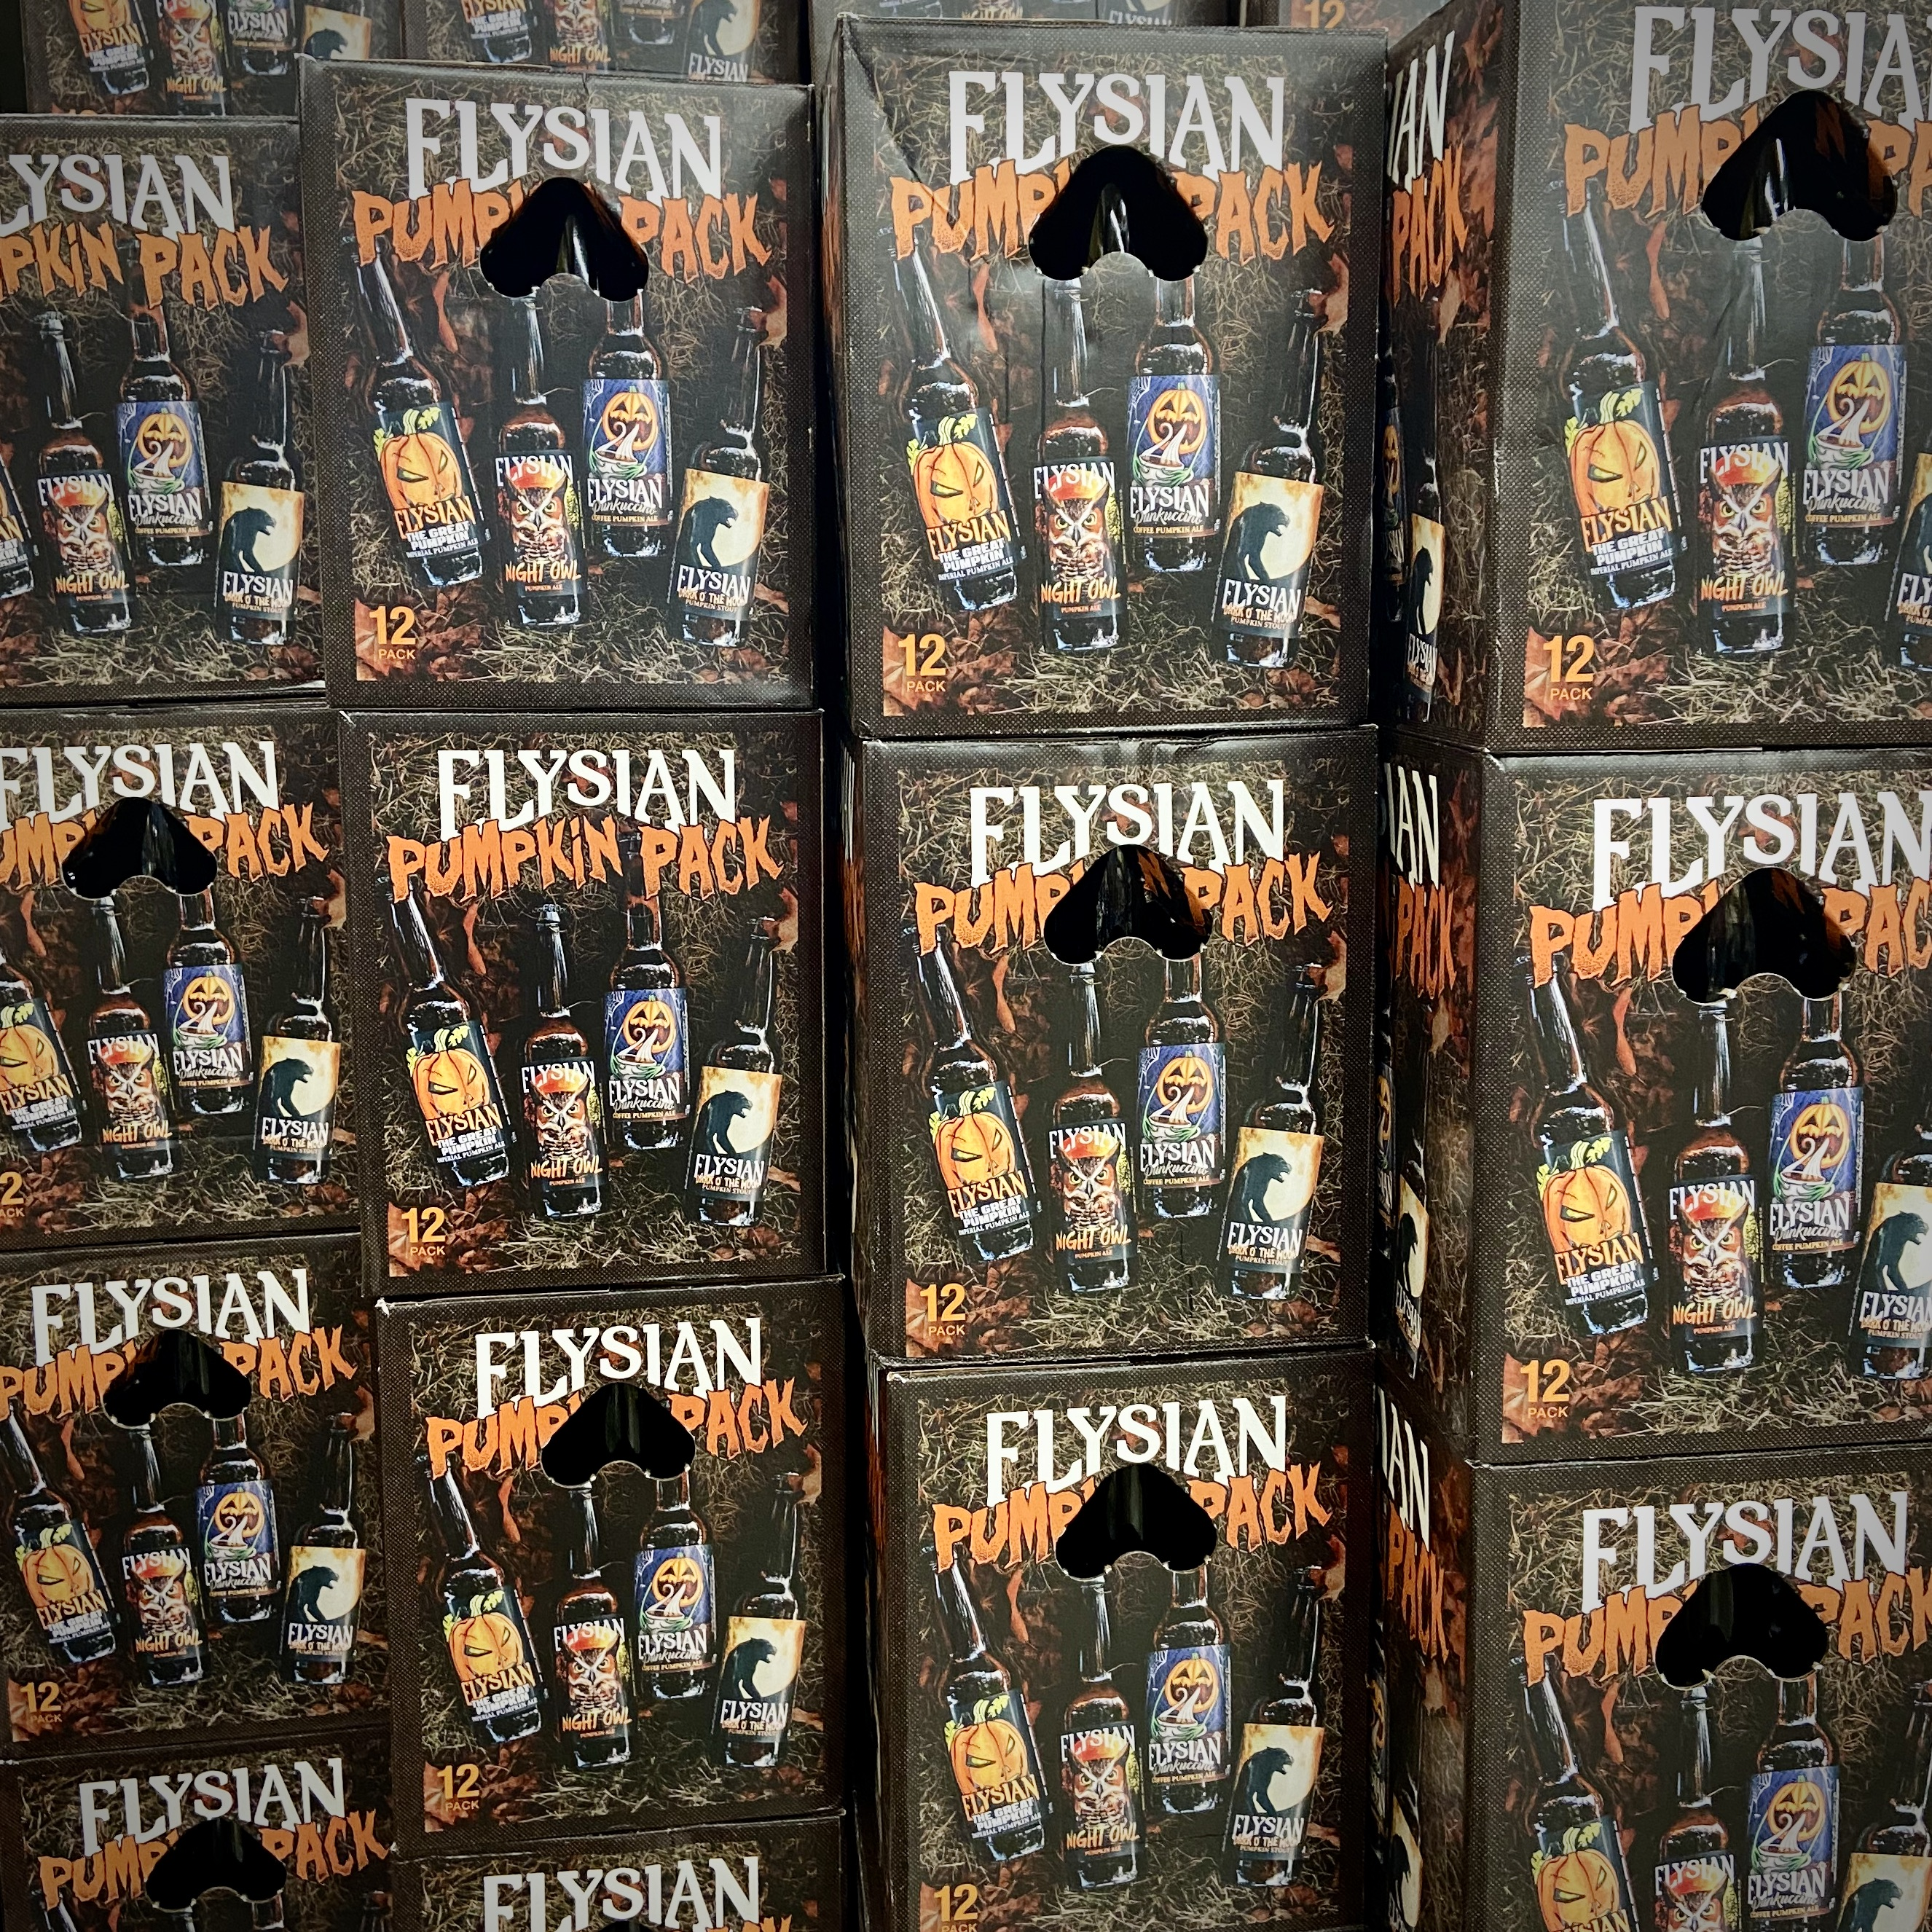 The Elysian Pumpkin Pack that contains three bottles each of The Great Pumpkin, Dark O' The Moon, Punkuccino, and Night Owl.